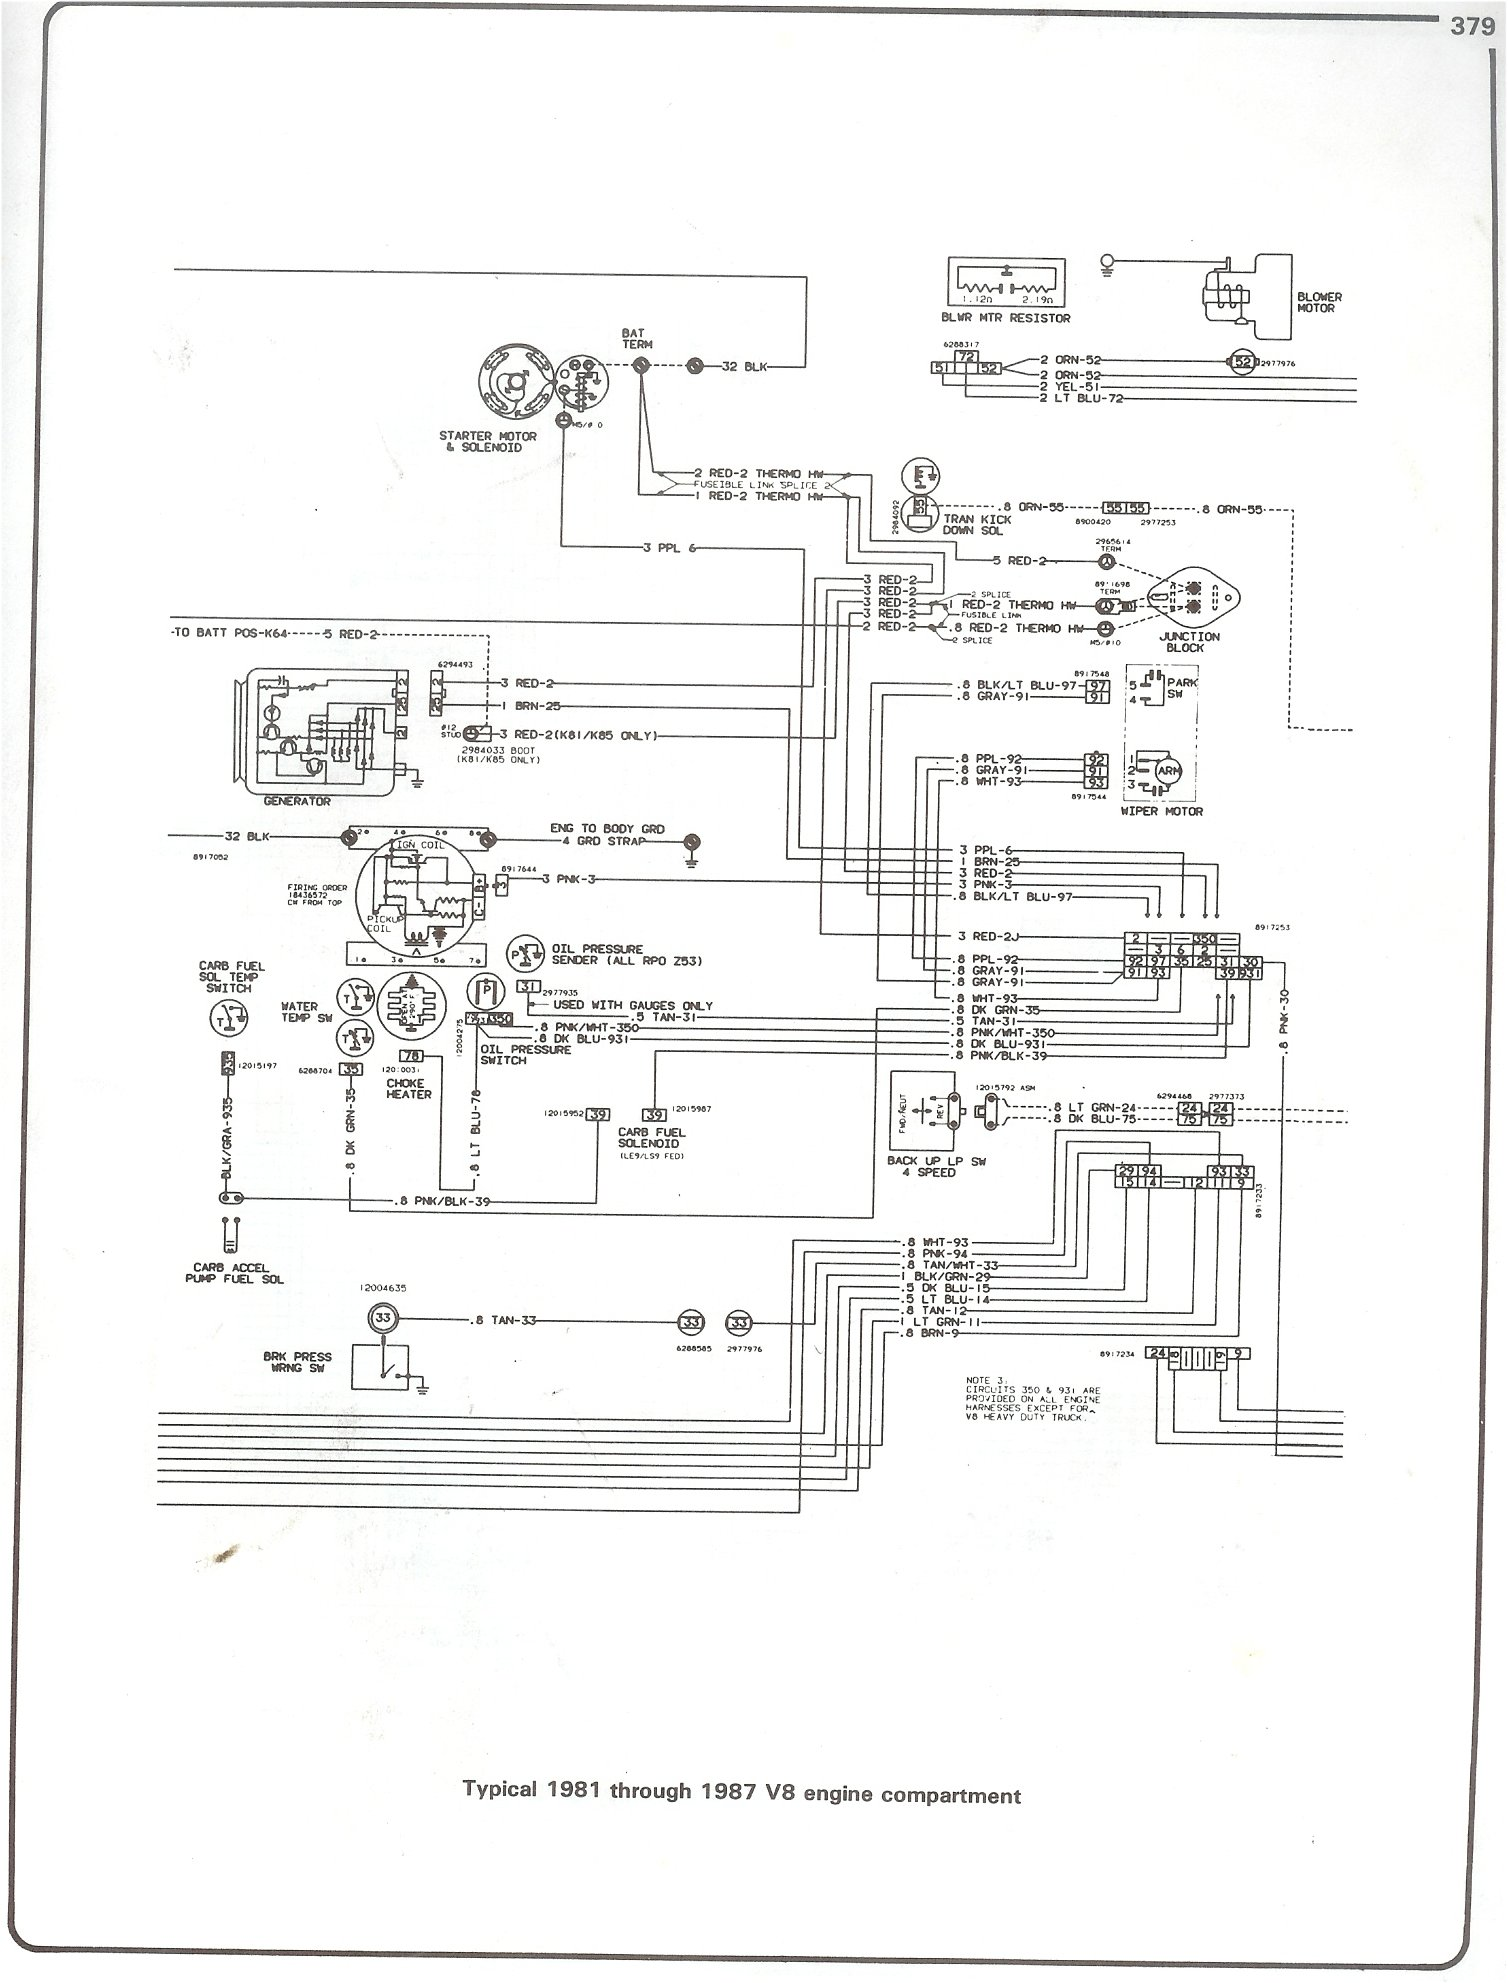 1987 chevy s10 engine diagram house wiring diagram symbols u2022 rh maxturner co 2002 chevy s10 engine diagram chevy s10 2.2 engine diagram